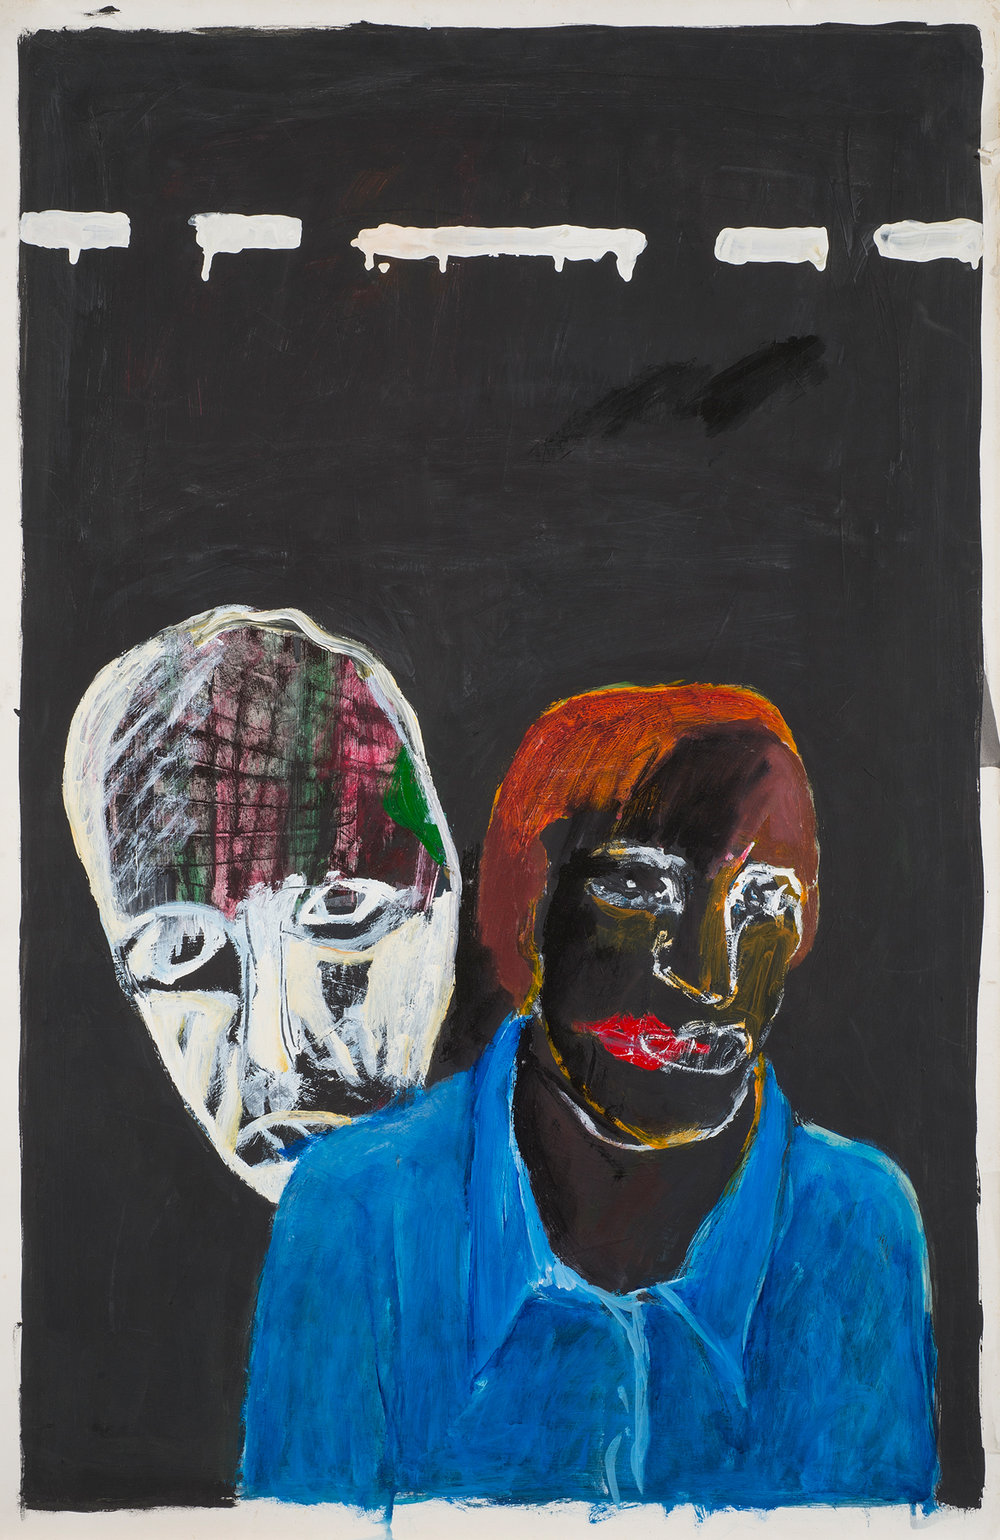 Untitled , 1991. Acrylic on paper, 40 x 26 in. (101.6 x 66.04 cm.)